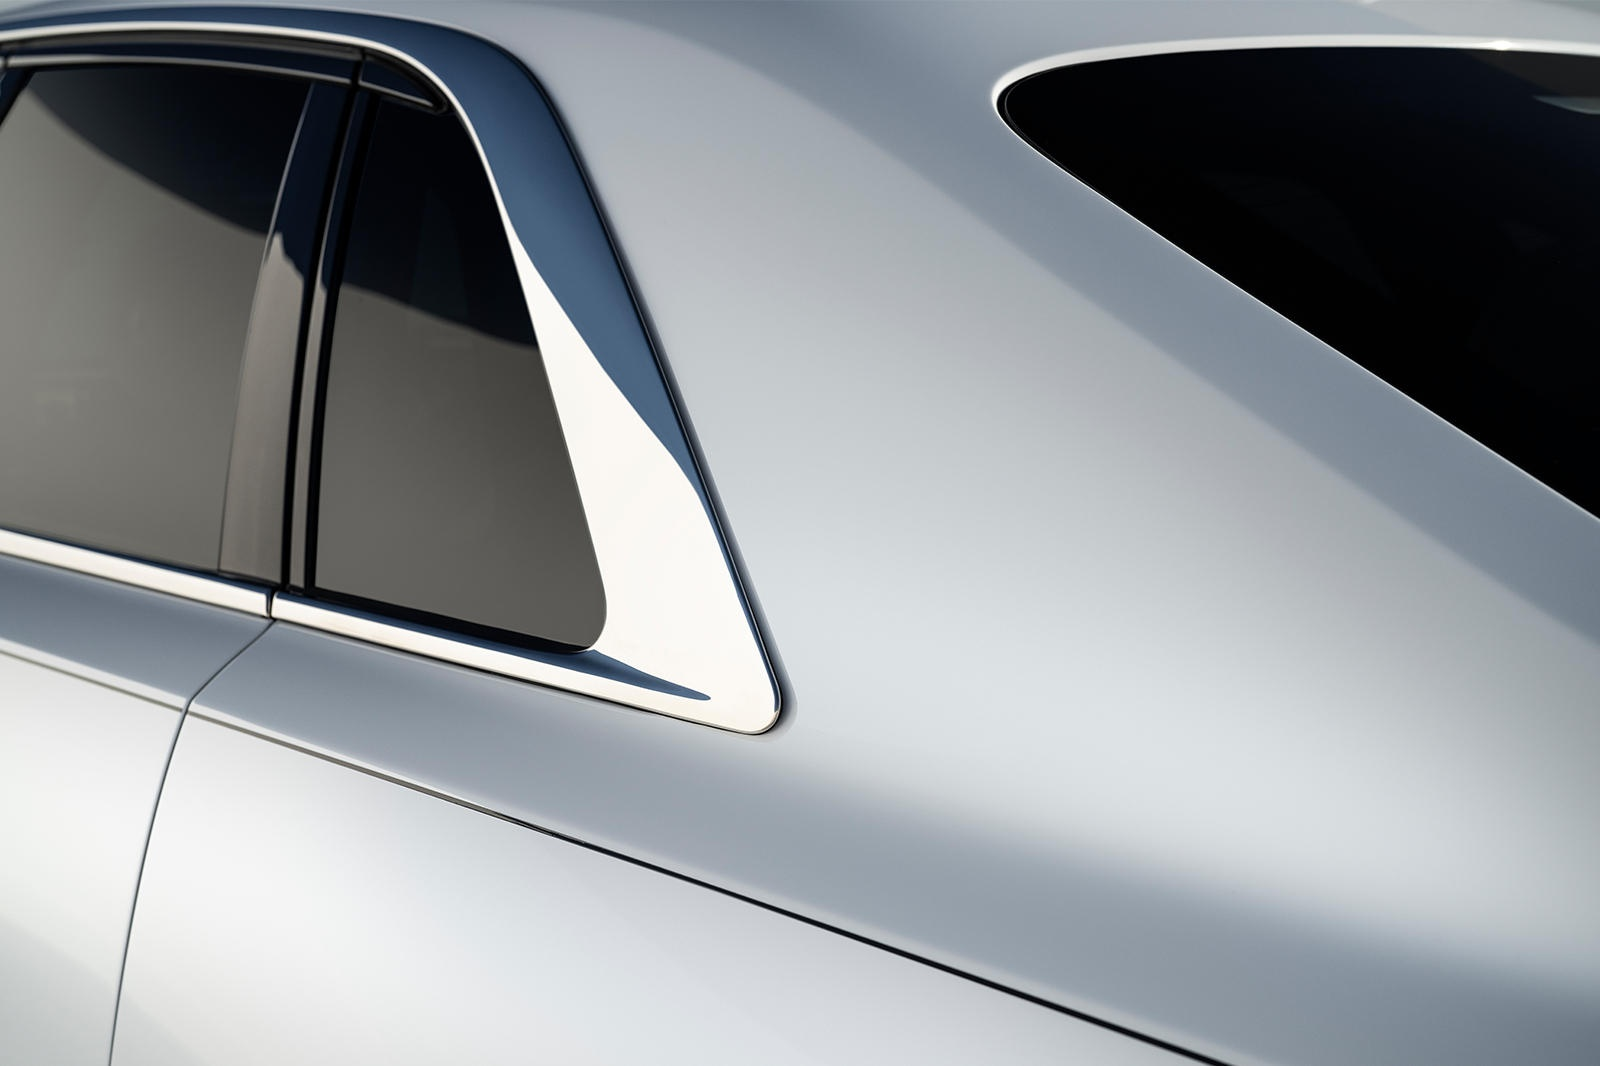 Danh gia Rolls-Royce Ghost 2021 anh 12